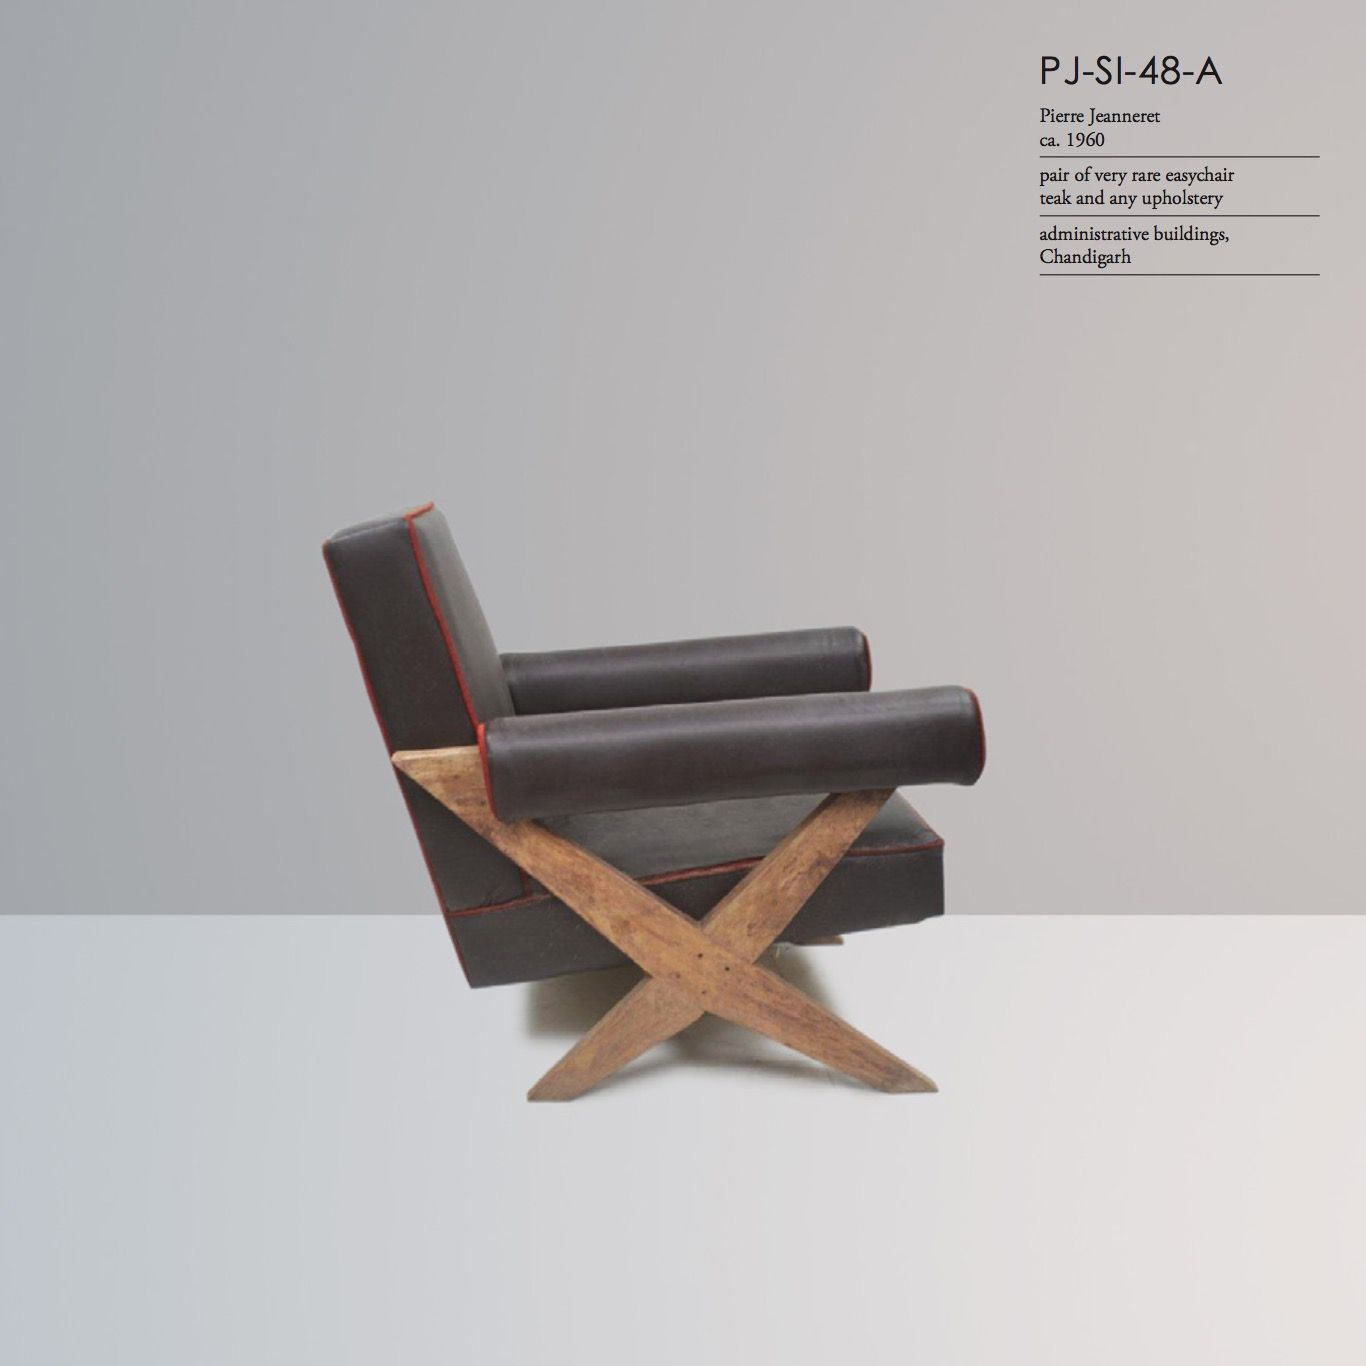 Pin By Mnko Dv On When You Have Nothing To Say Draw Something Pierre Jeanneret Pierre Jeanneret Furniture Le Corbusier